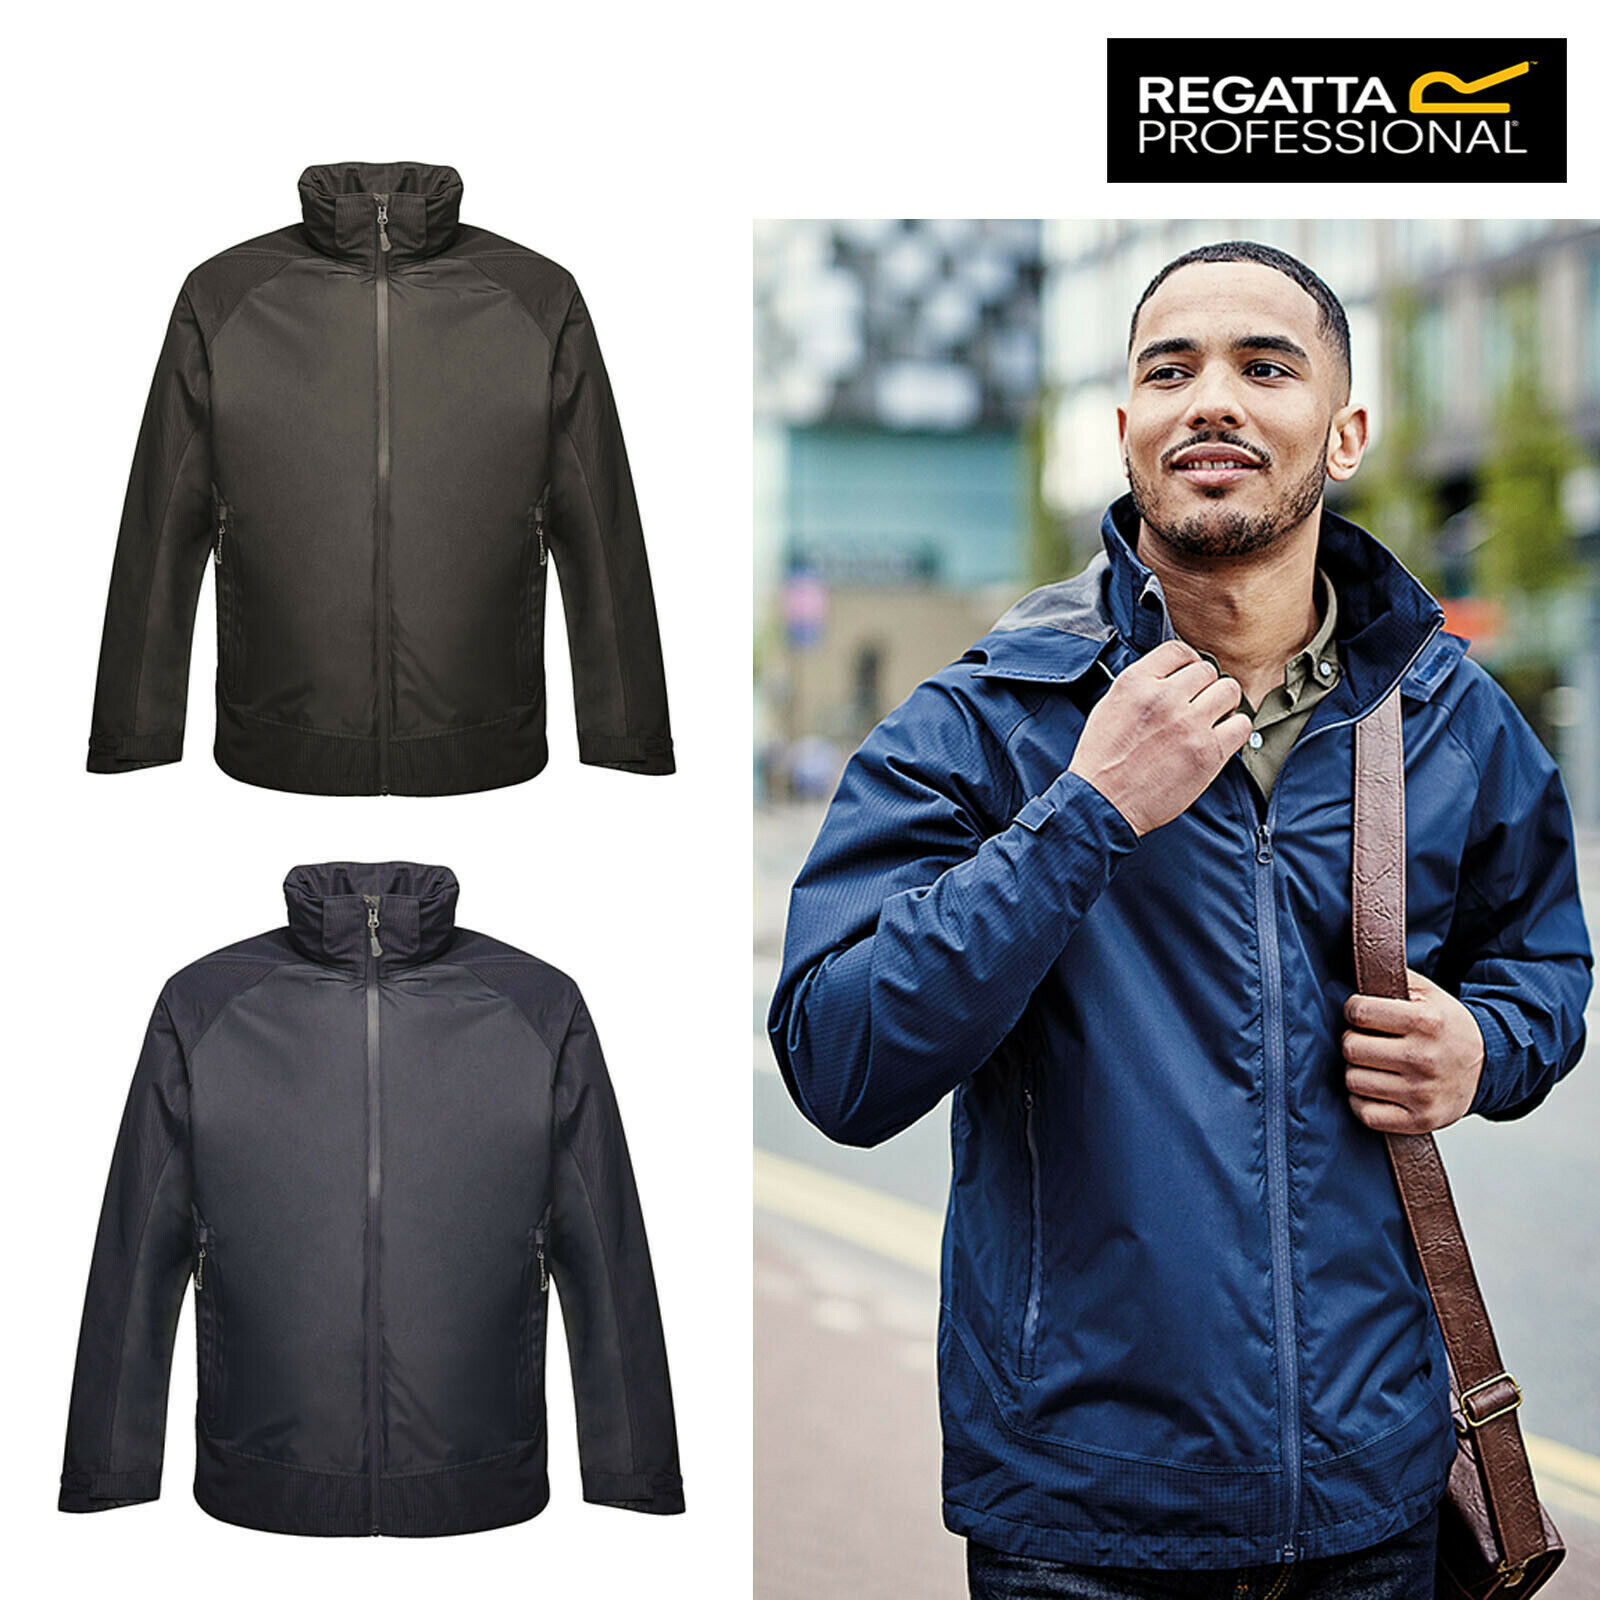 Regatta Professional herren Ashford II jacke Waterproof & breathable Isotex